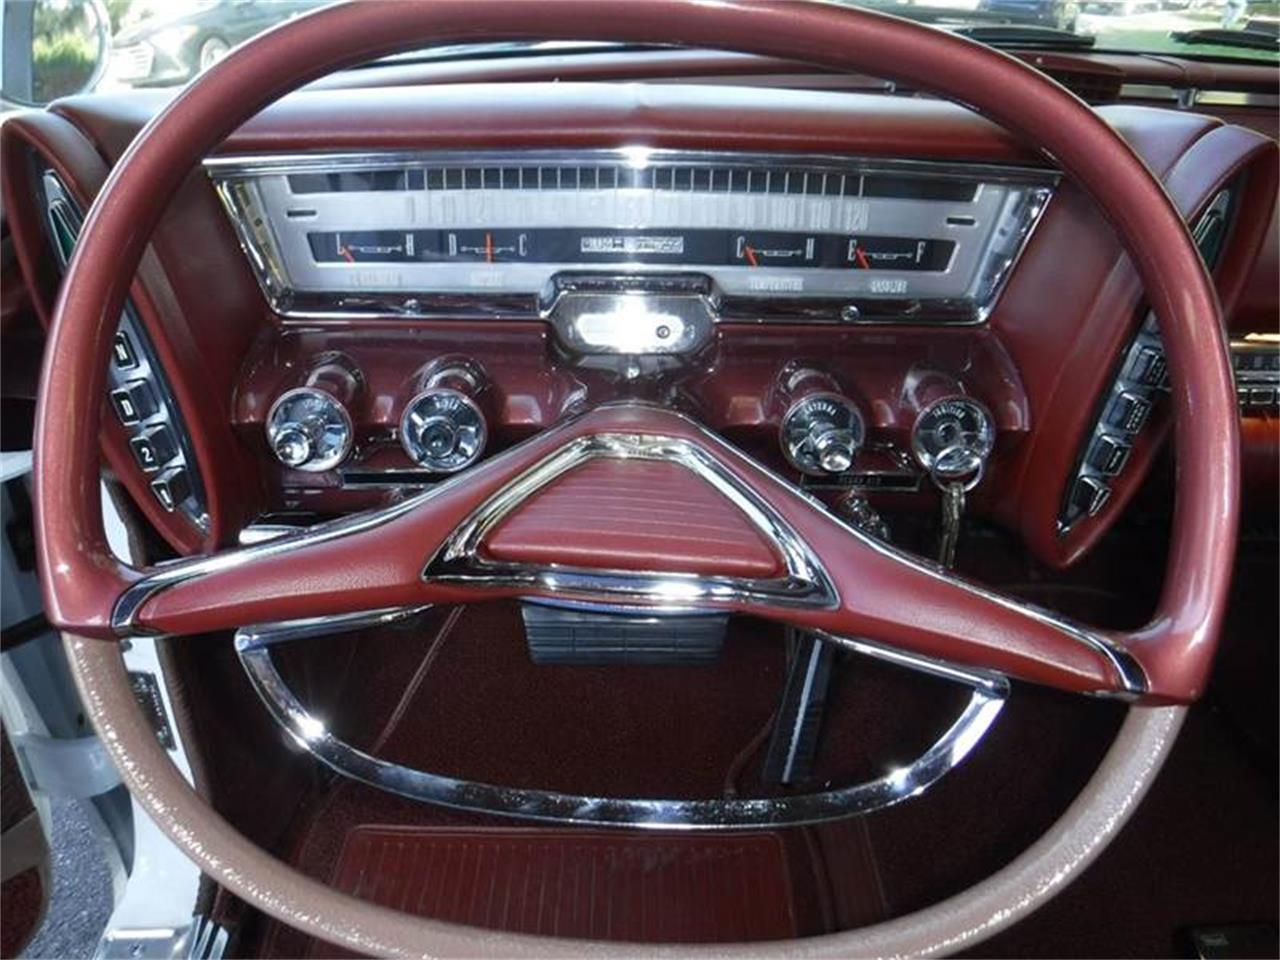 Large Picture of Classic 1961 Chrysler Imperial - $59,995.00 - MCTX